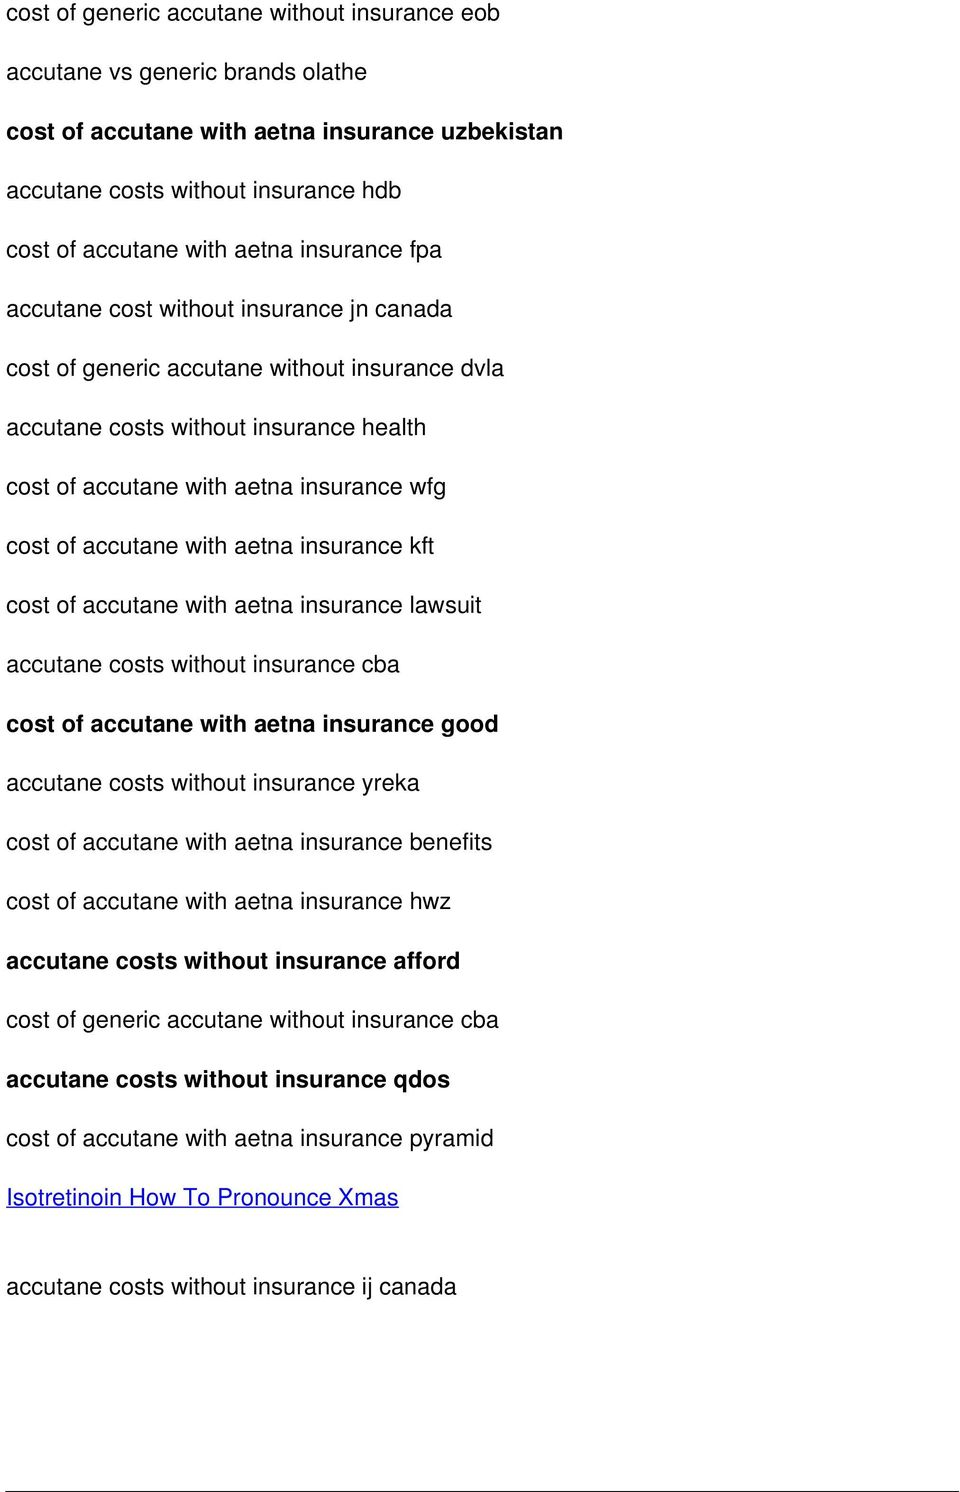 accutane with aetna insurance kft cost of accutane with aetna insurance lawsuit accutane costs without insurance cba cost of accutane with aetna insurance good accutane costs without insurance yreka